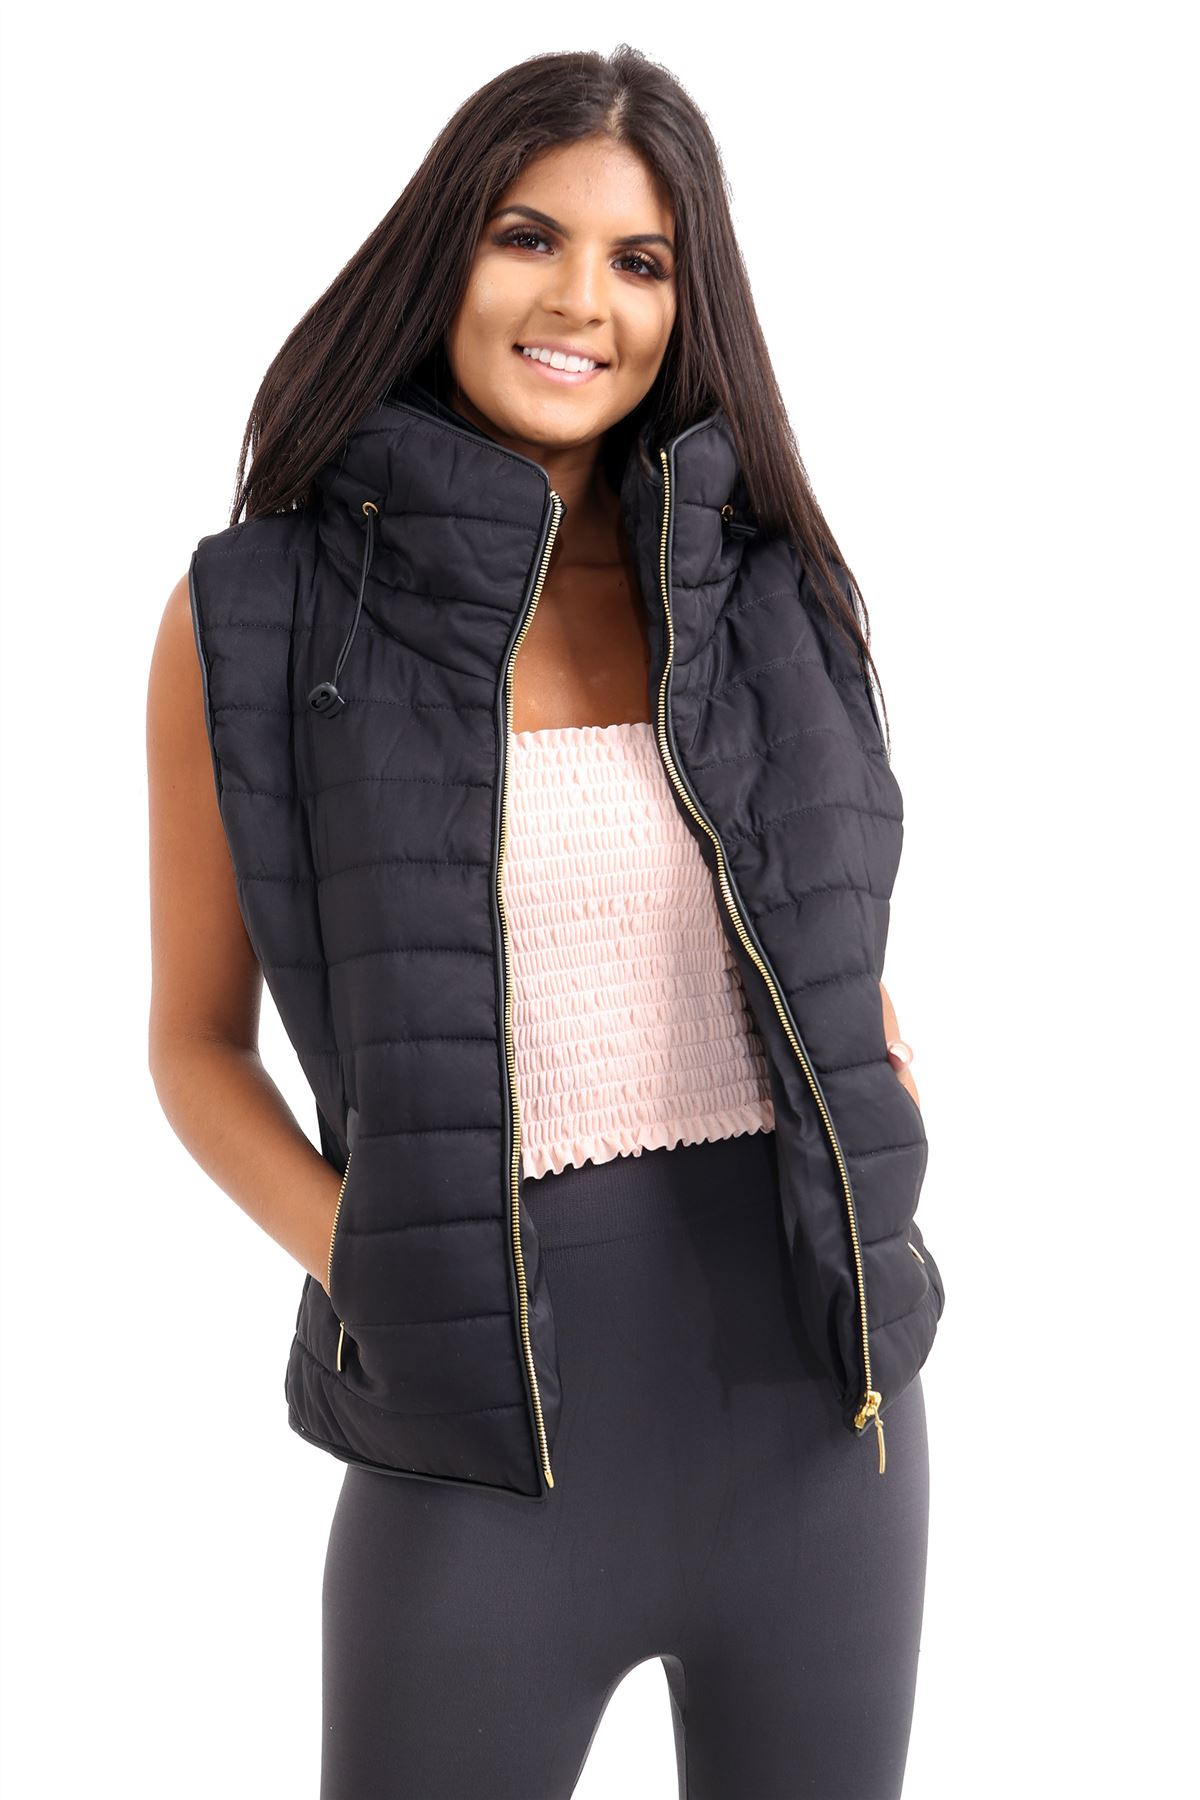 Ladies-Gilet-Quilted-Padded-Body-Warmer-Sleeveless-Fur-Collar-Puffer-Jacket-Coat thumbnail 6